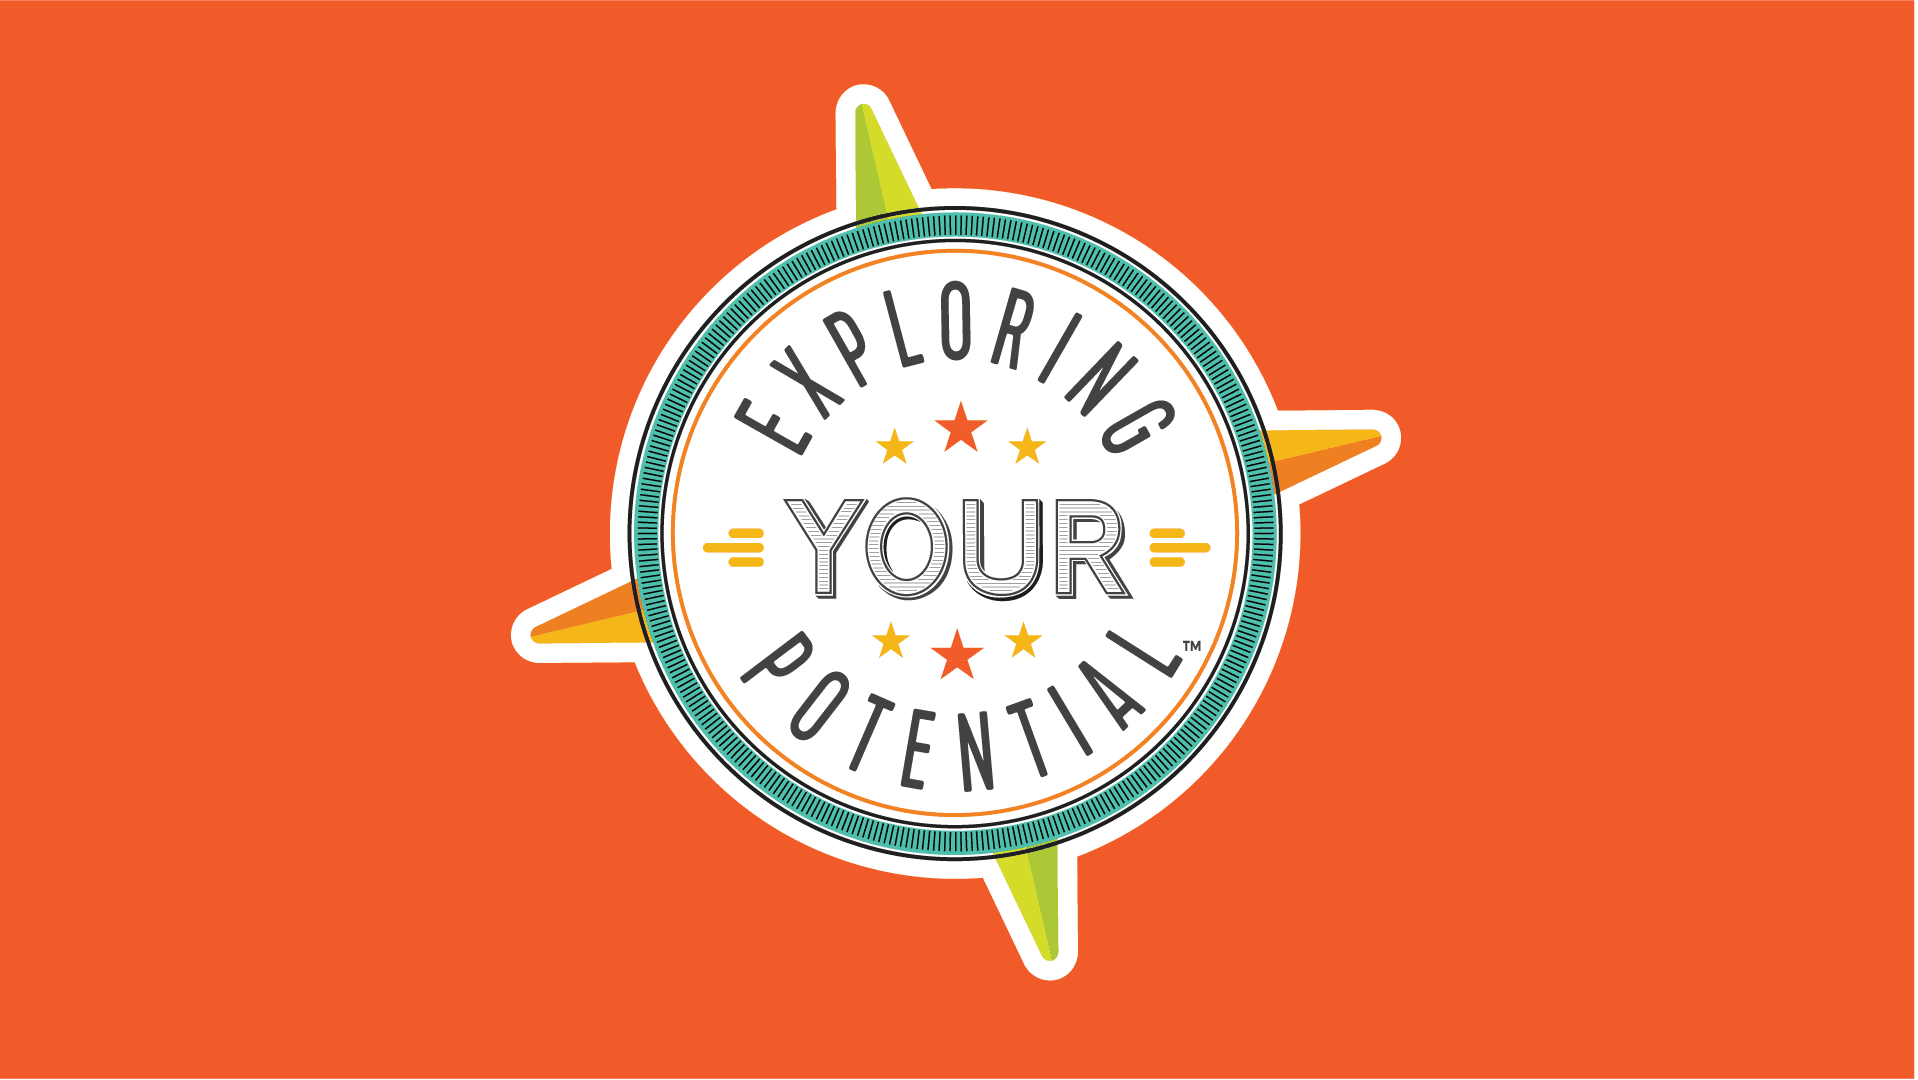 Image: Exploring Your Potential Logo